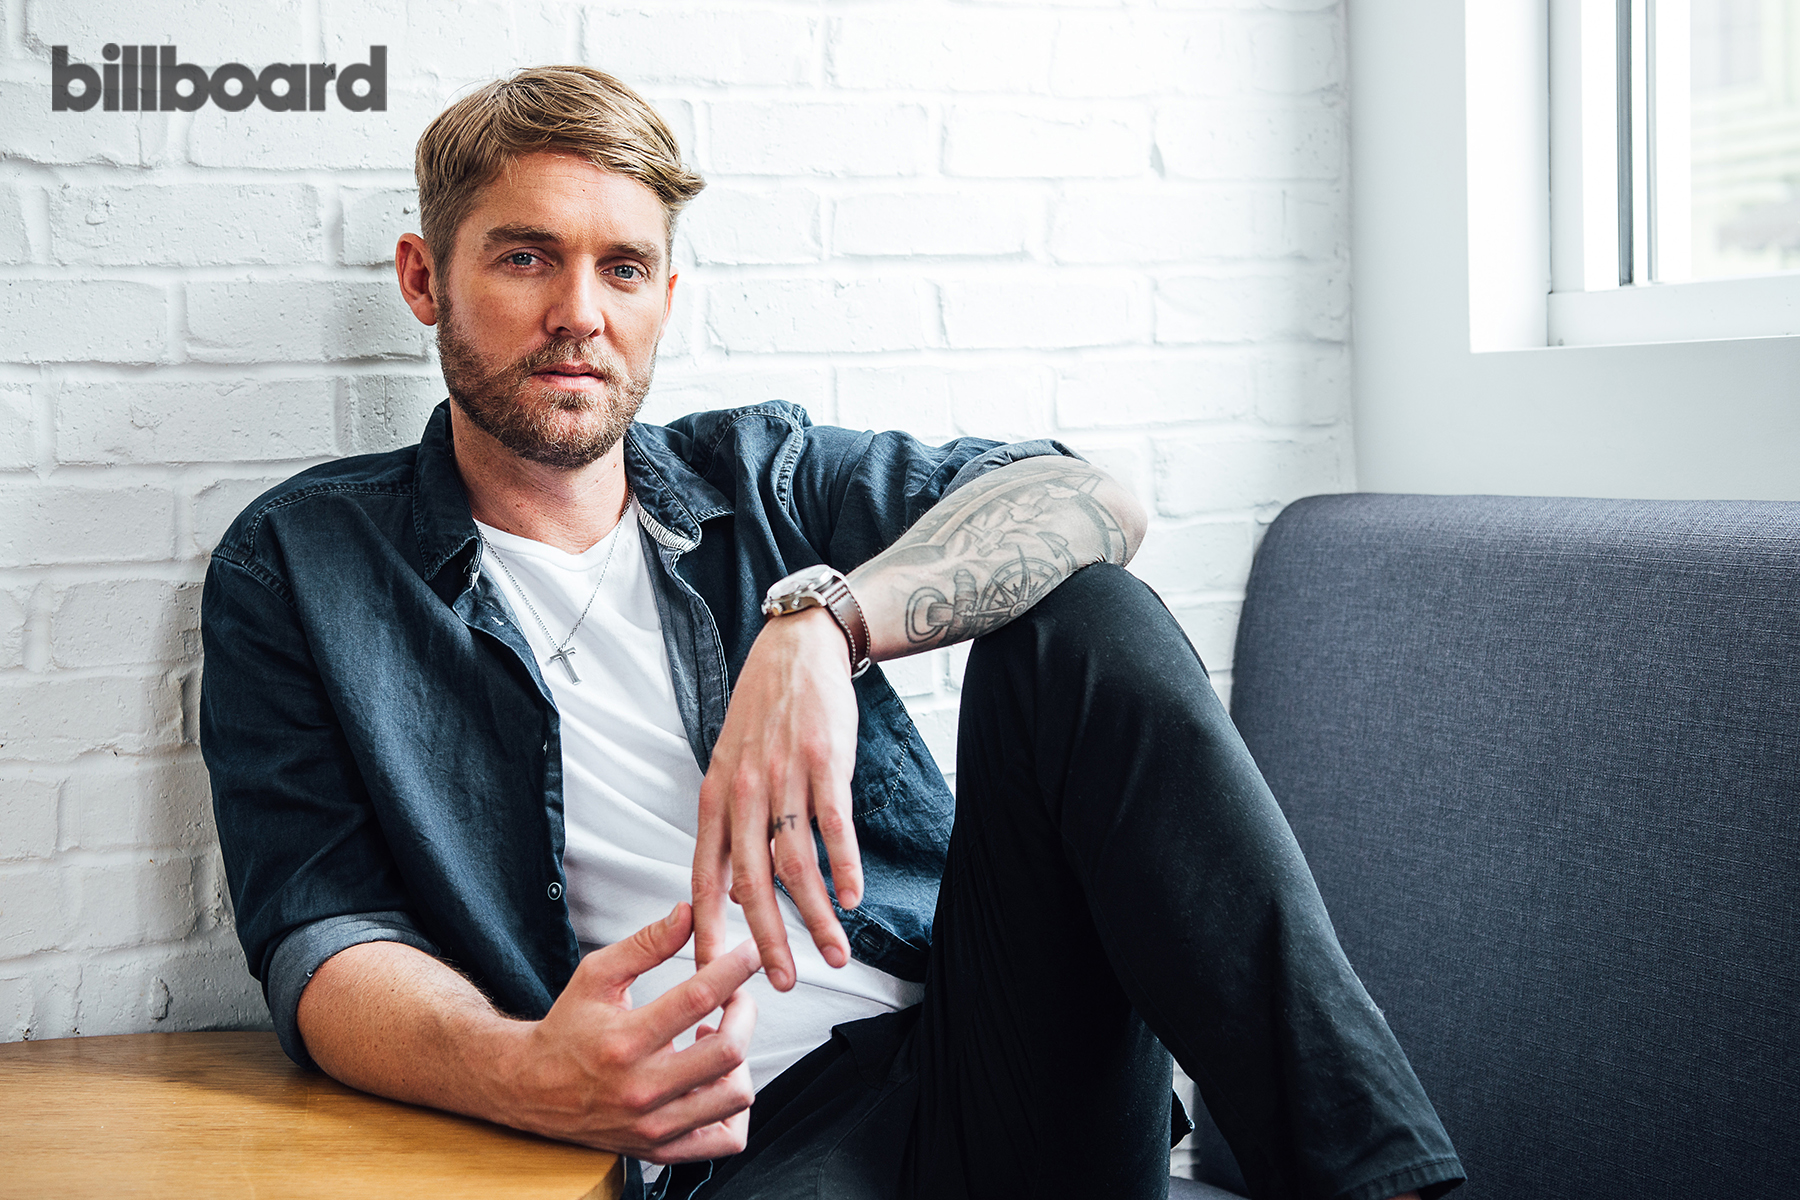 Country singer Brett Young for Billboard June 2018 issue